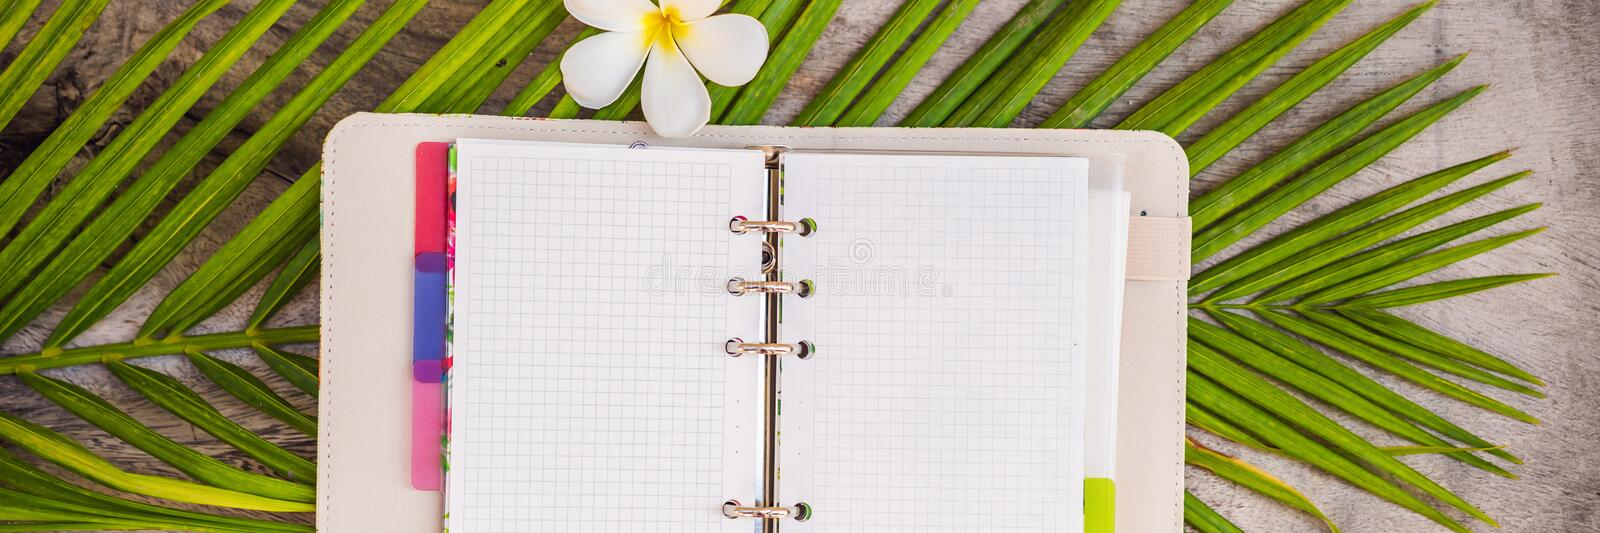 Notepad and stationery on wooden background. Planner for business and study. Fans of stationery BANNER, LONG FORMAT. Notepad and stationery on wooden background stock photography